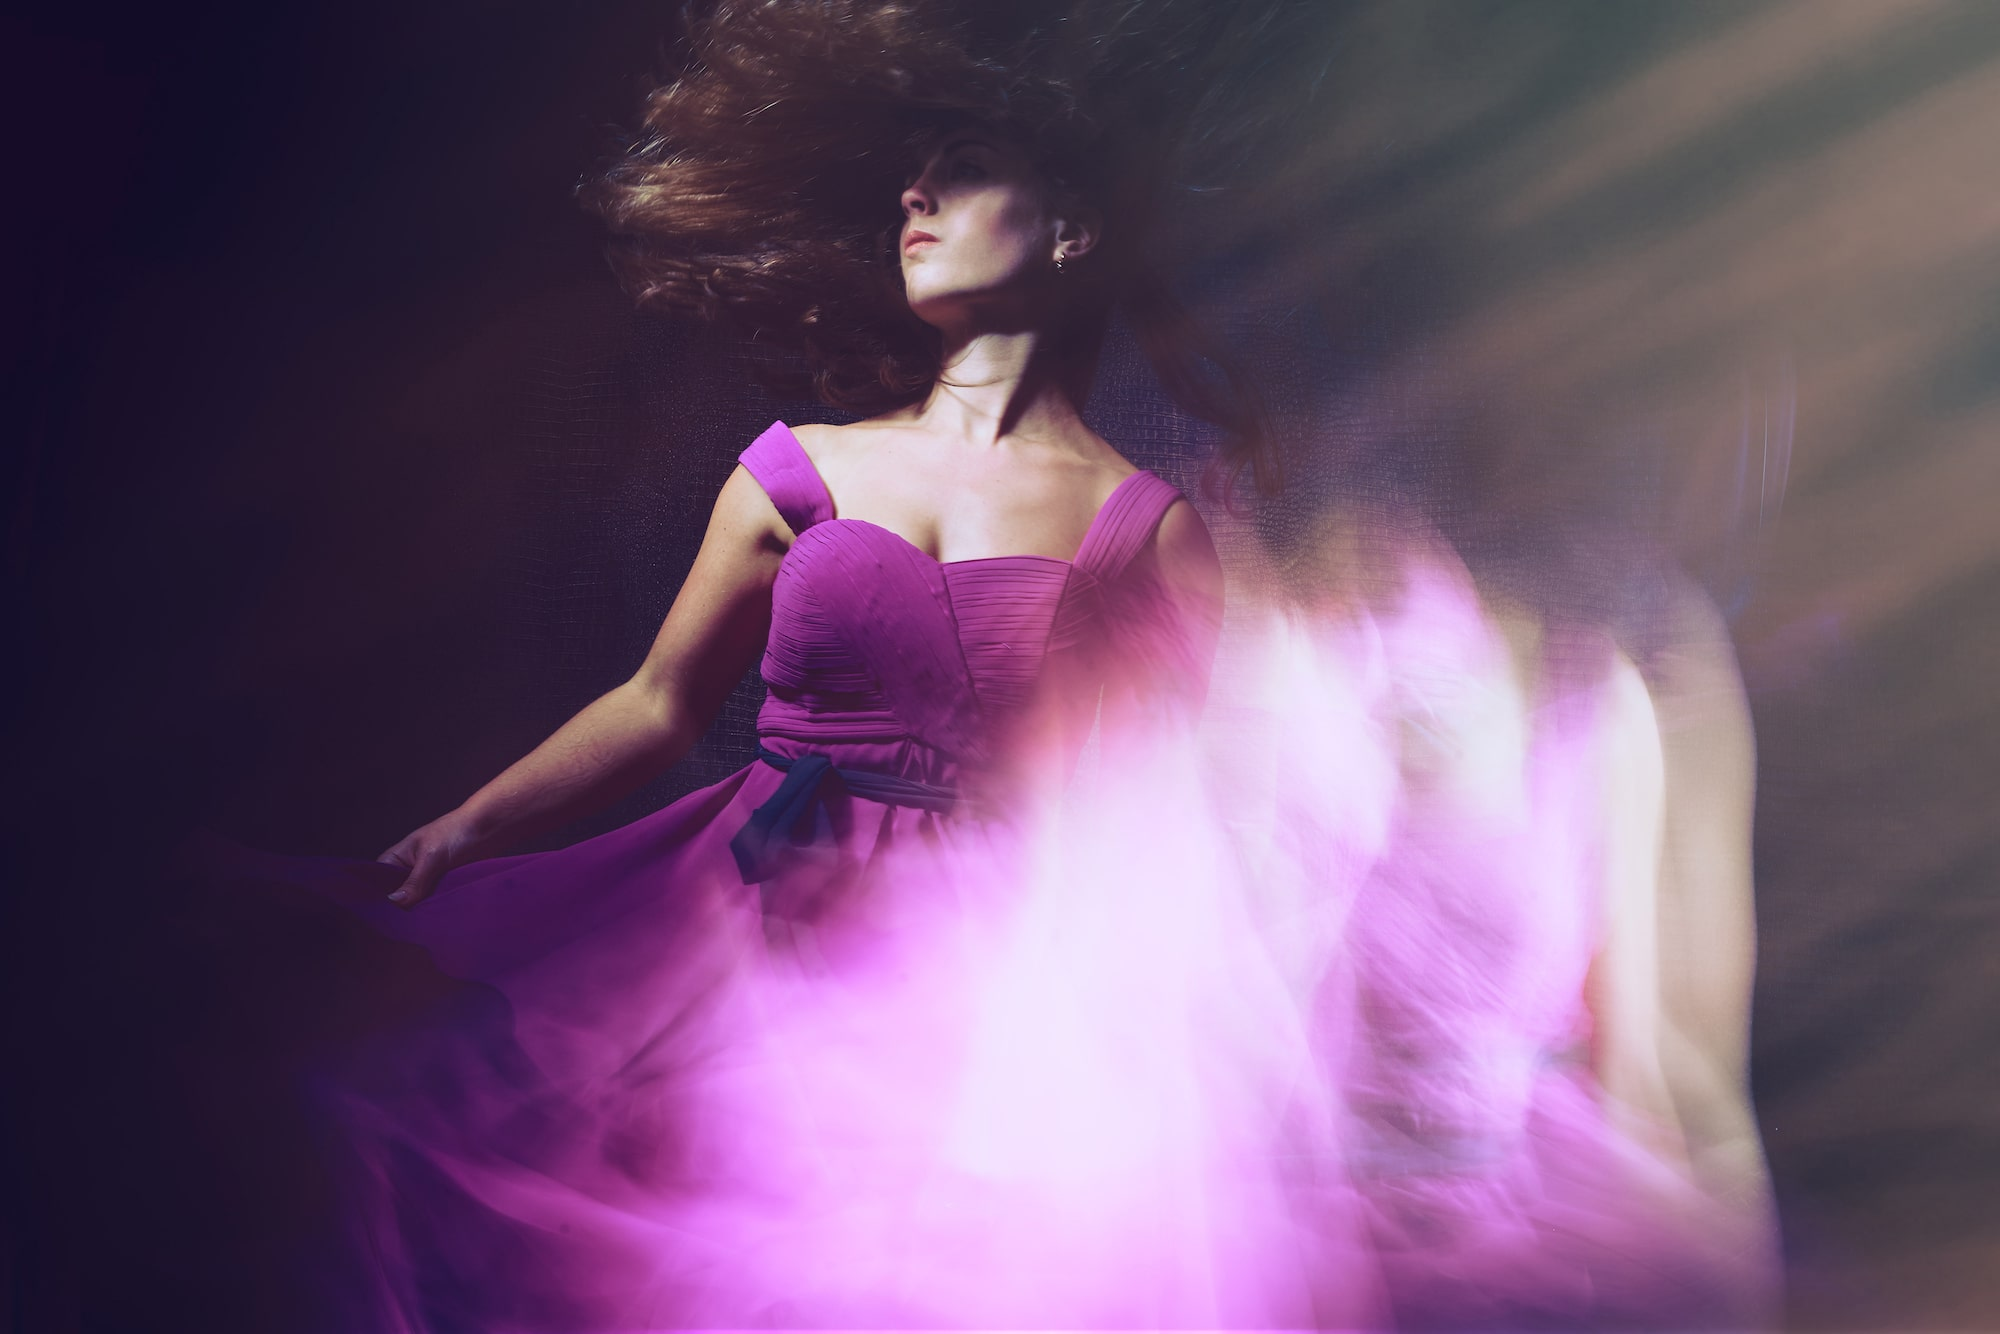 frank doorhof sony alpha 7RM3 multiple exposure shot of a lady wearing a purple dress and shaking her head